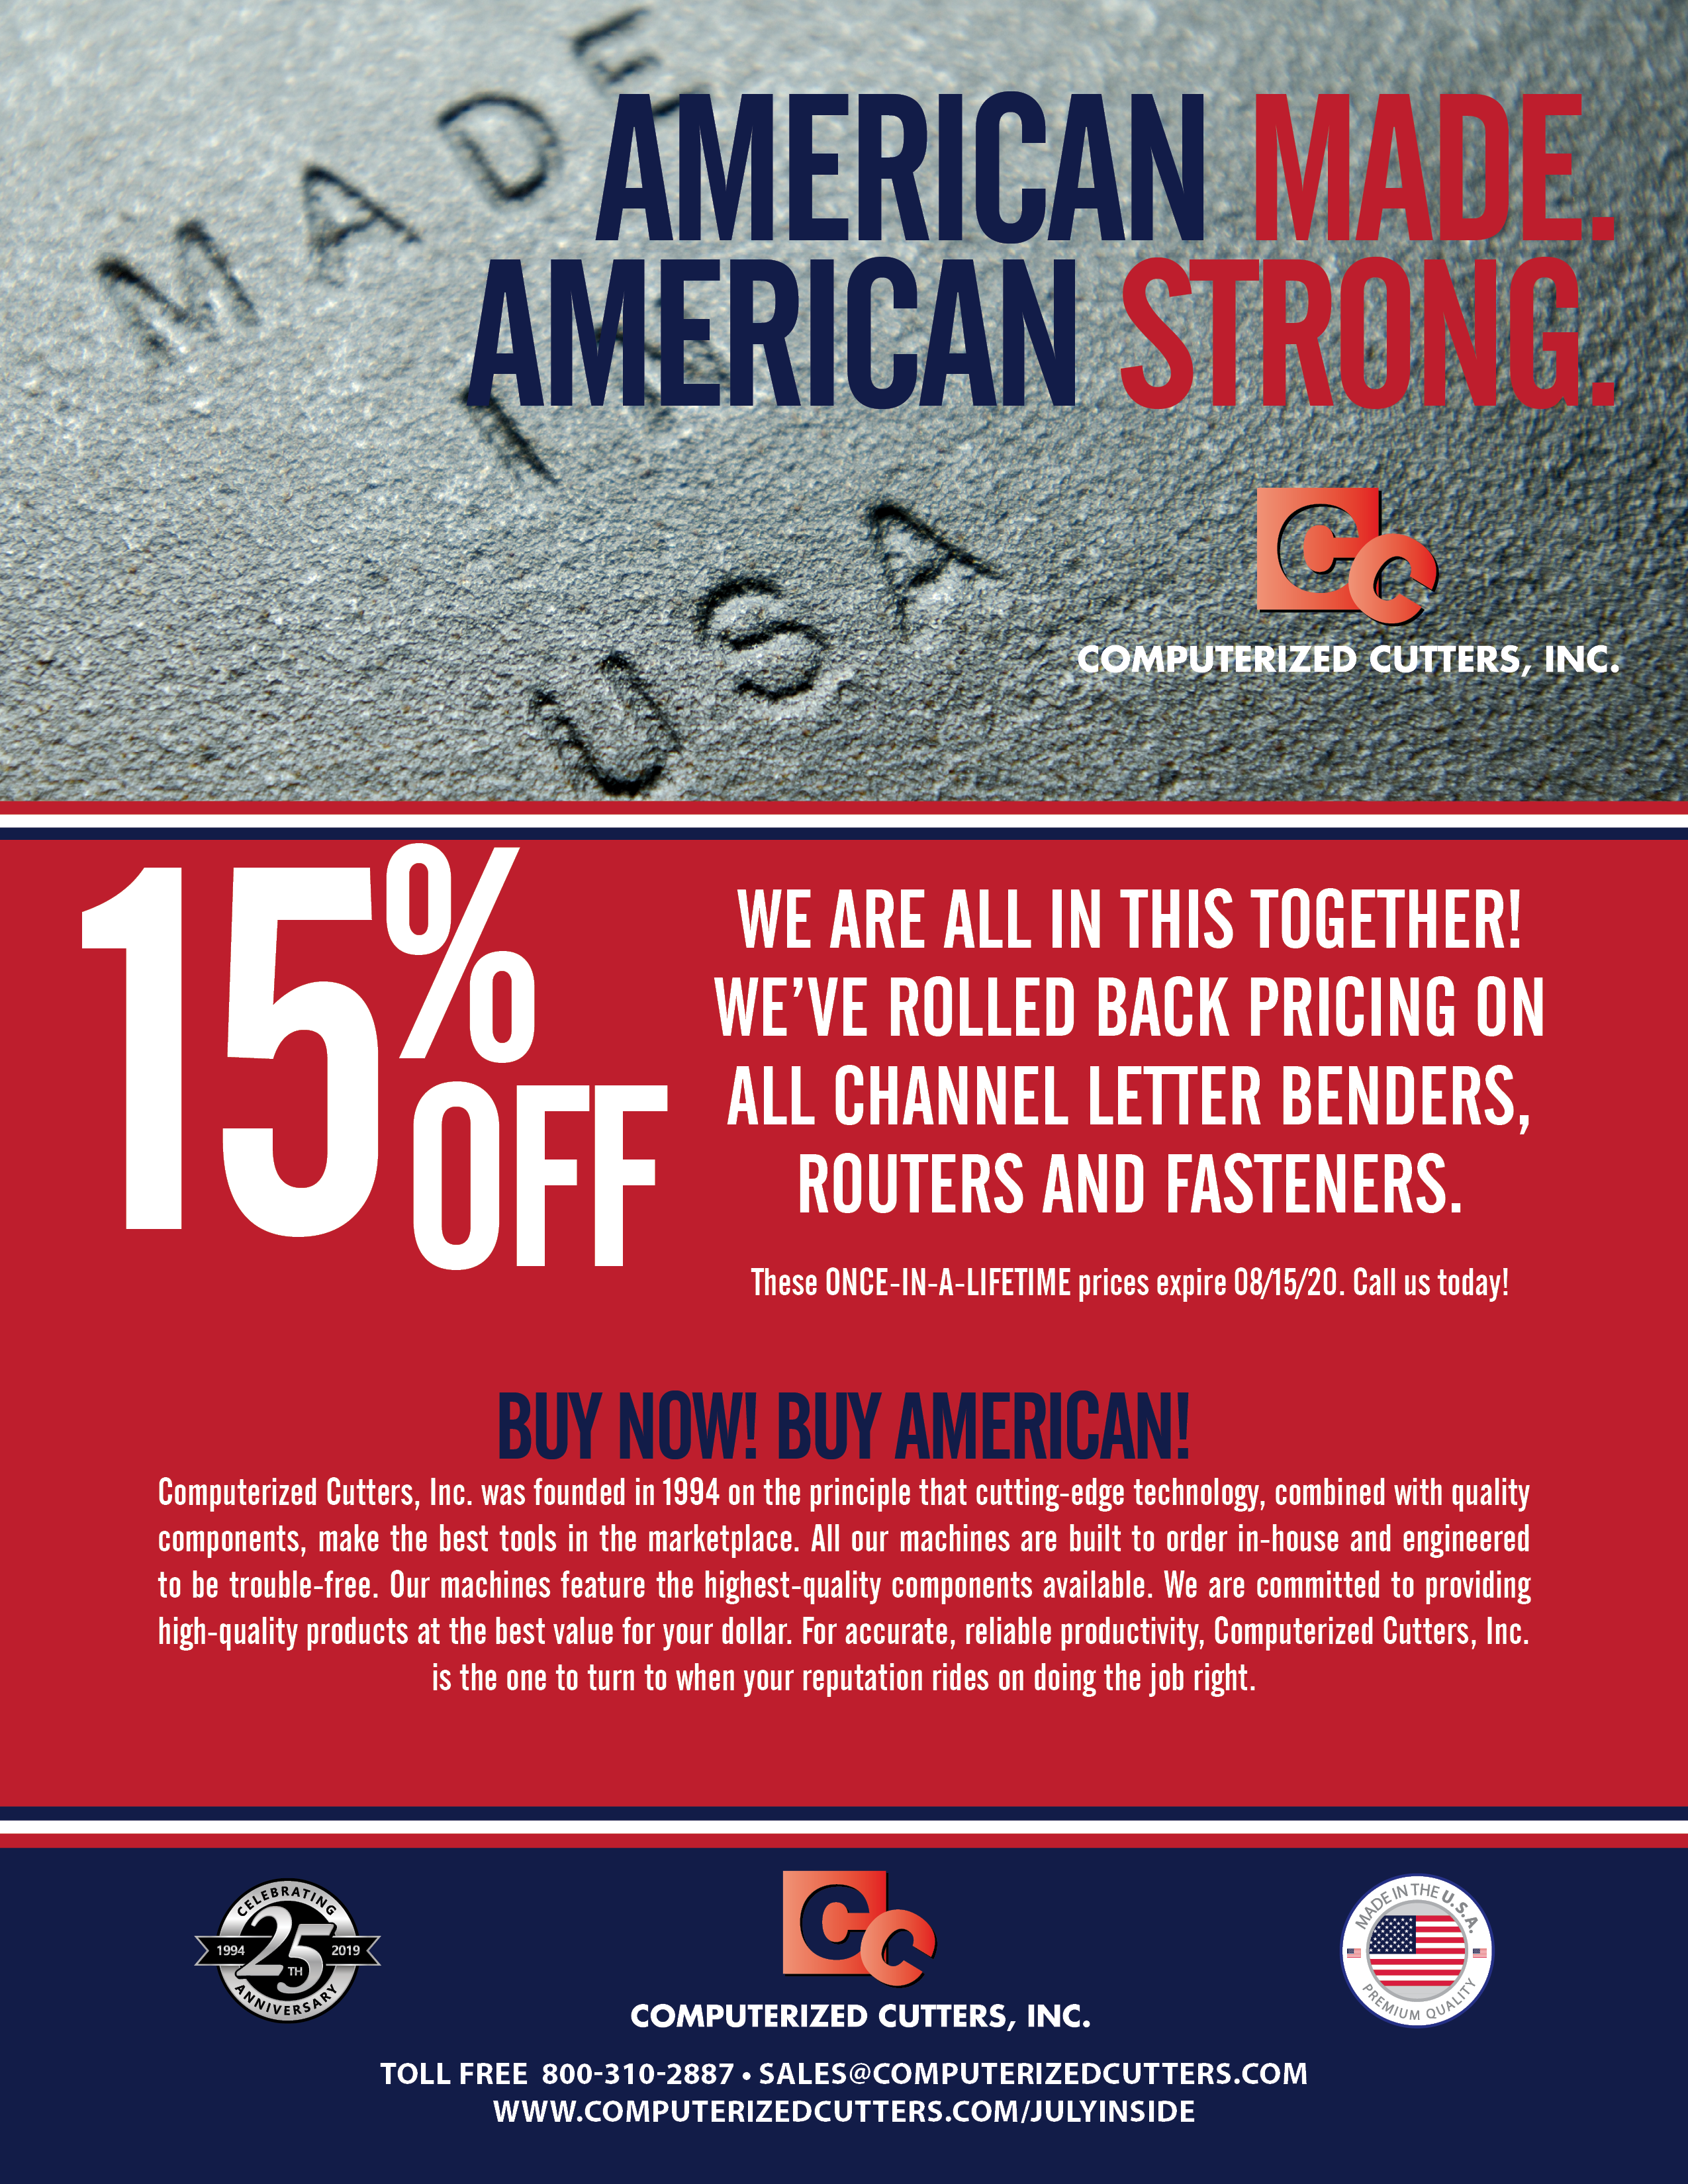 Computerized Cutters American Made American Strong 15% off Sale